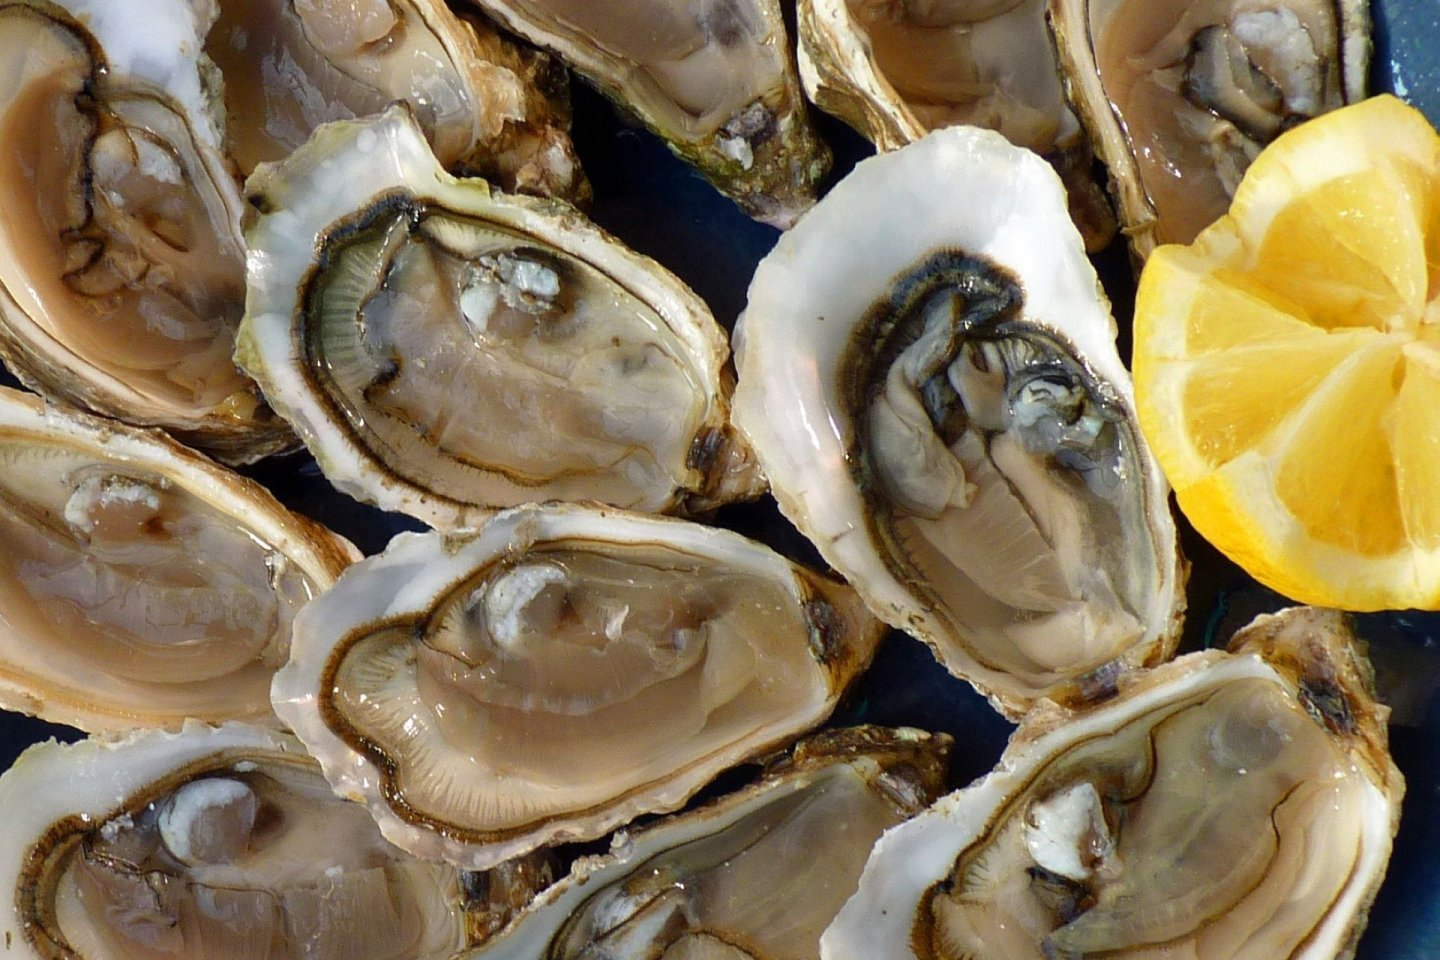 Oysters are a specialty of the Nitoyo Coast area